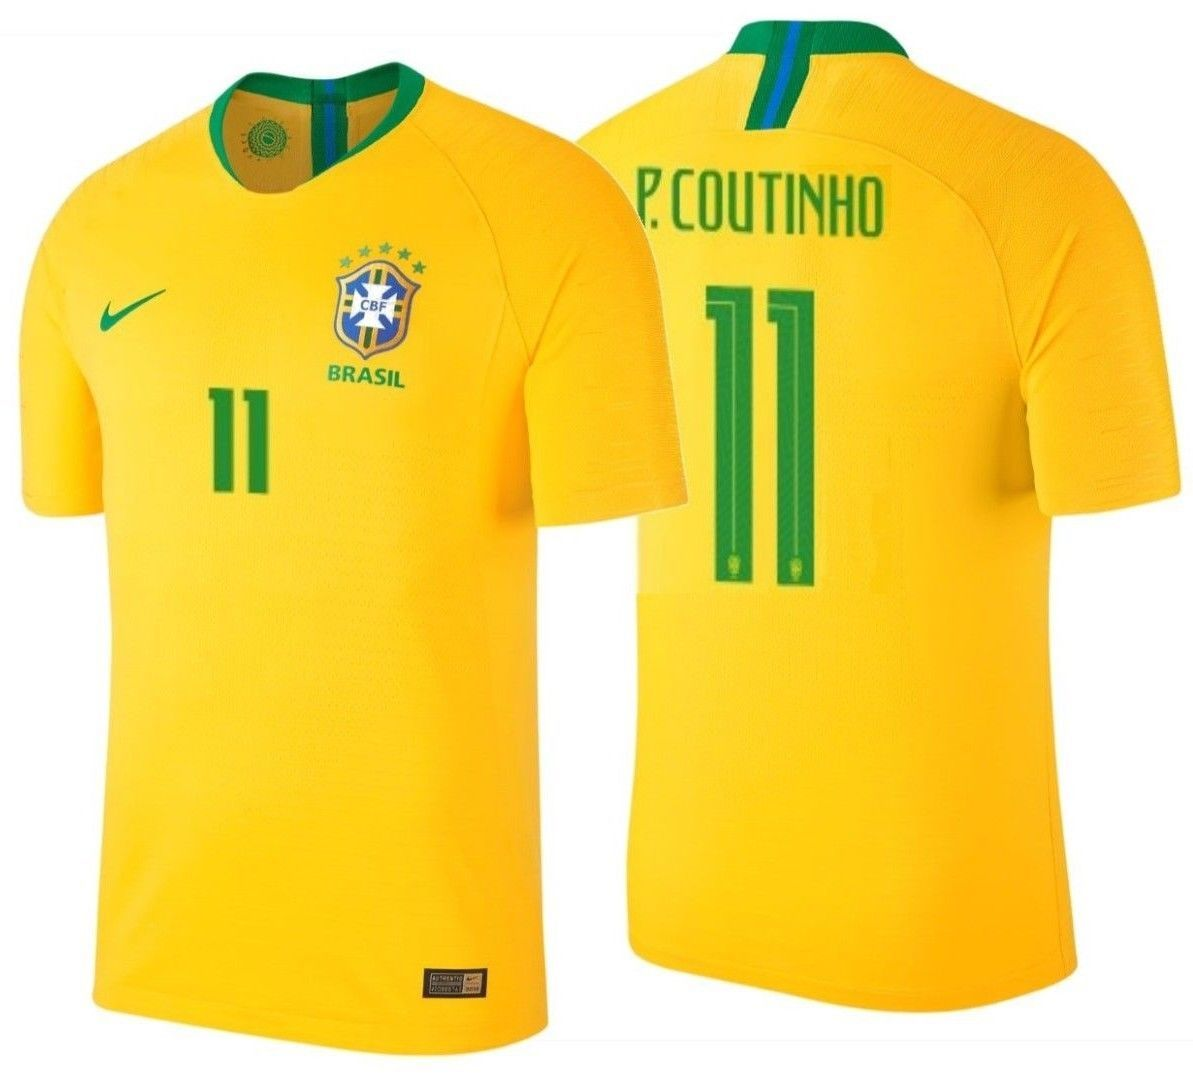 04f9da5ca32 S l1600. S l1600. Previous. NIKE P. COUTINHO BRAZIL VAPOR MATCH AUTHENTIC  HOME JERSEY FIFA WORLD CUP 2018.